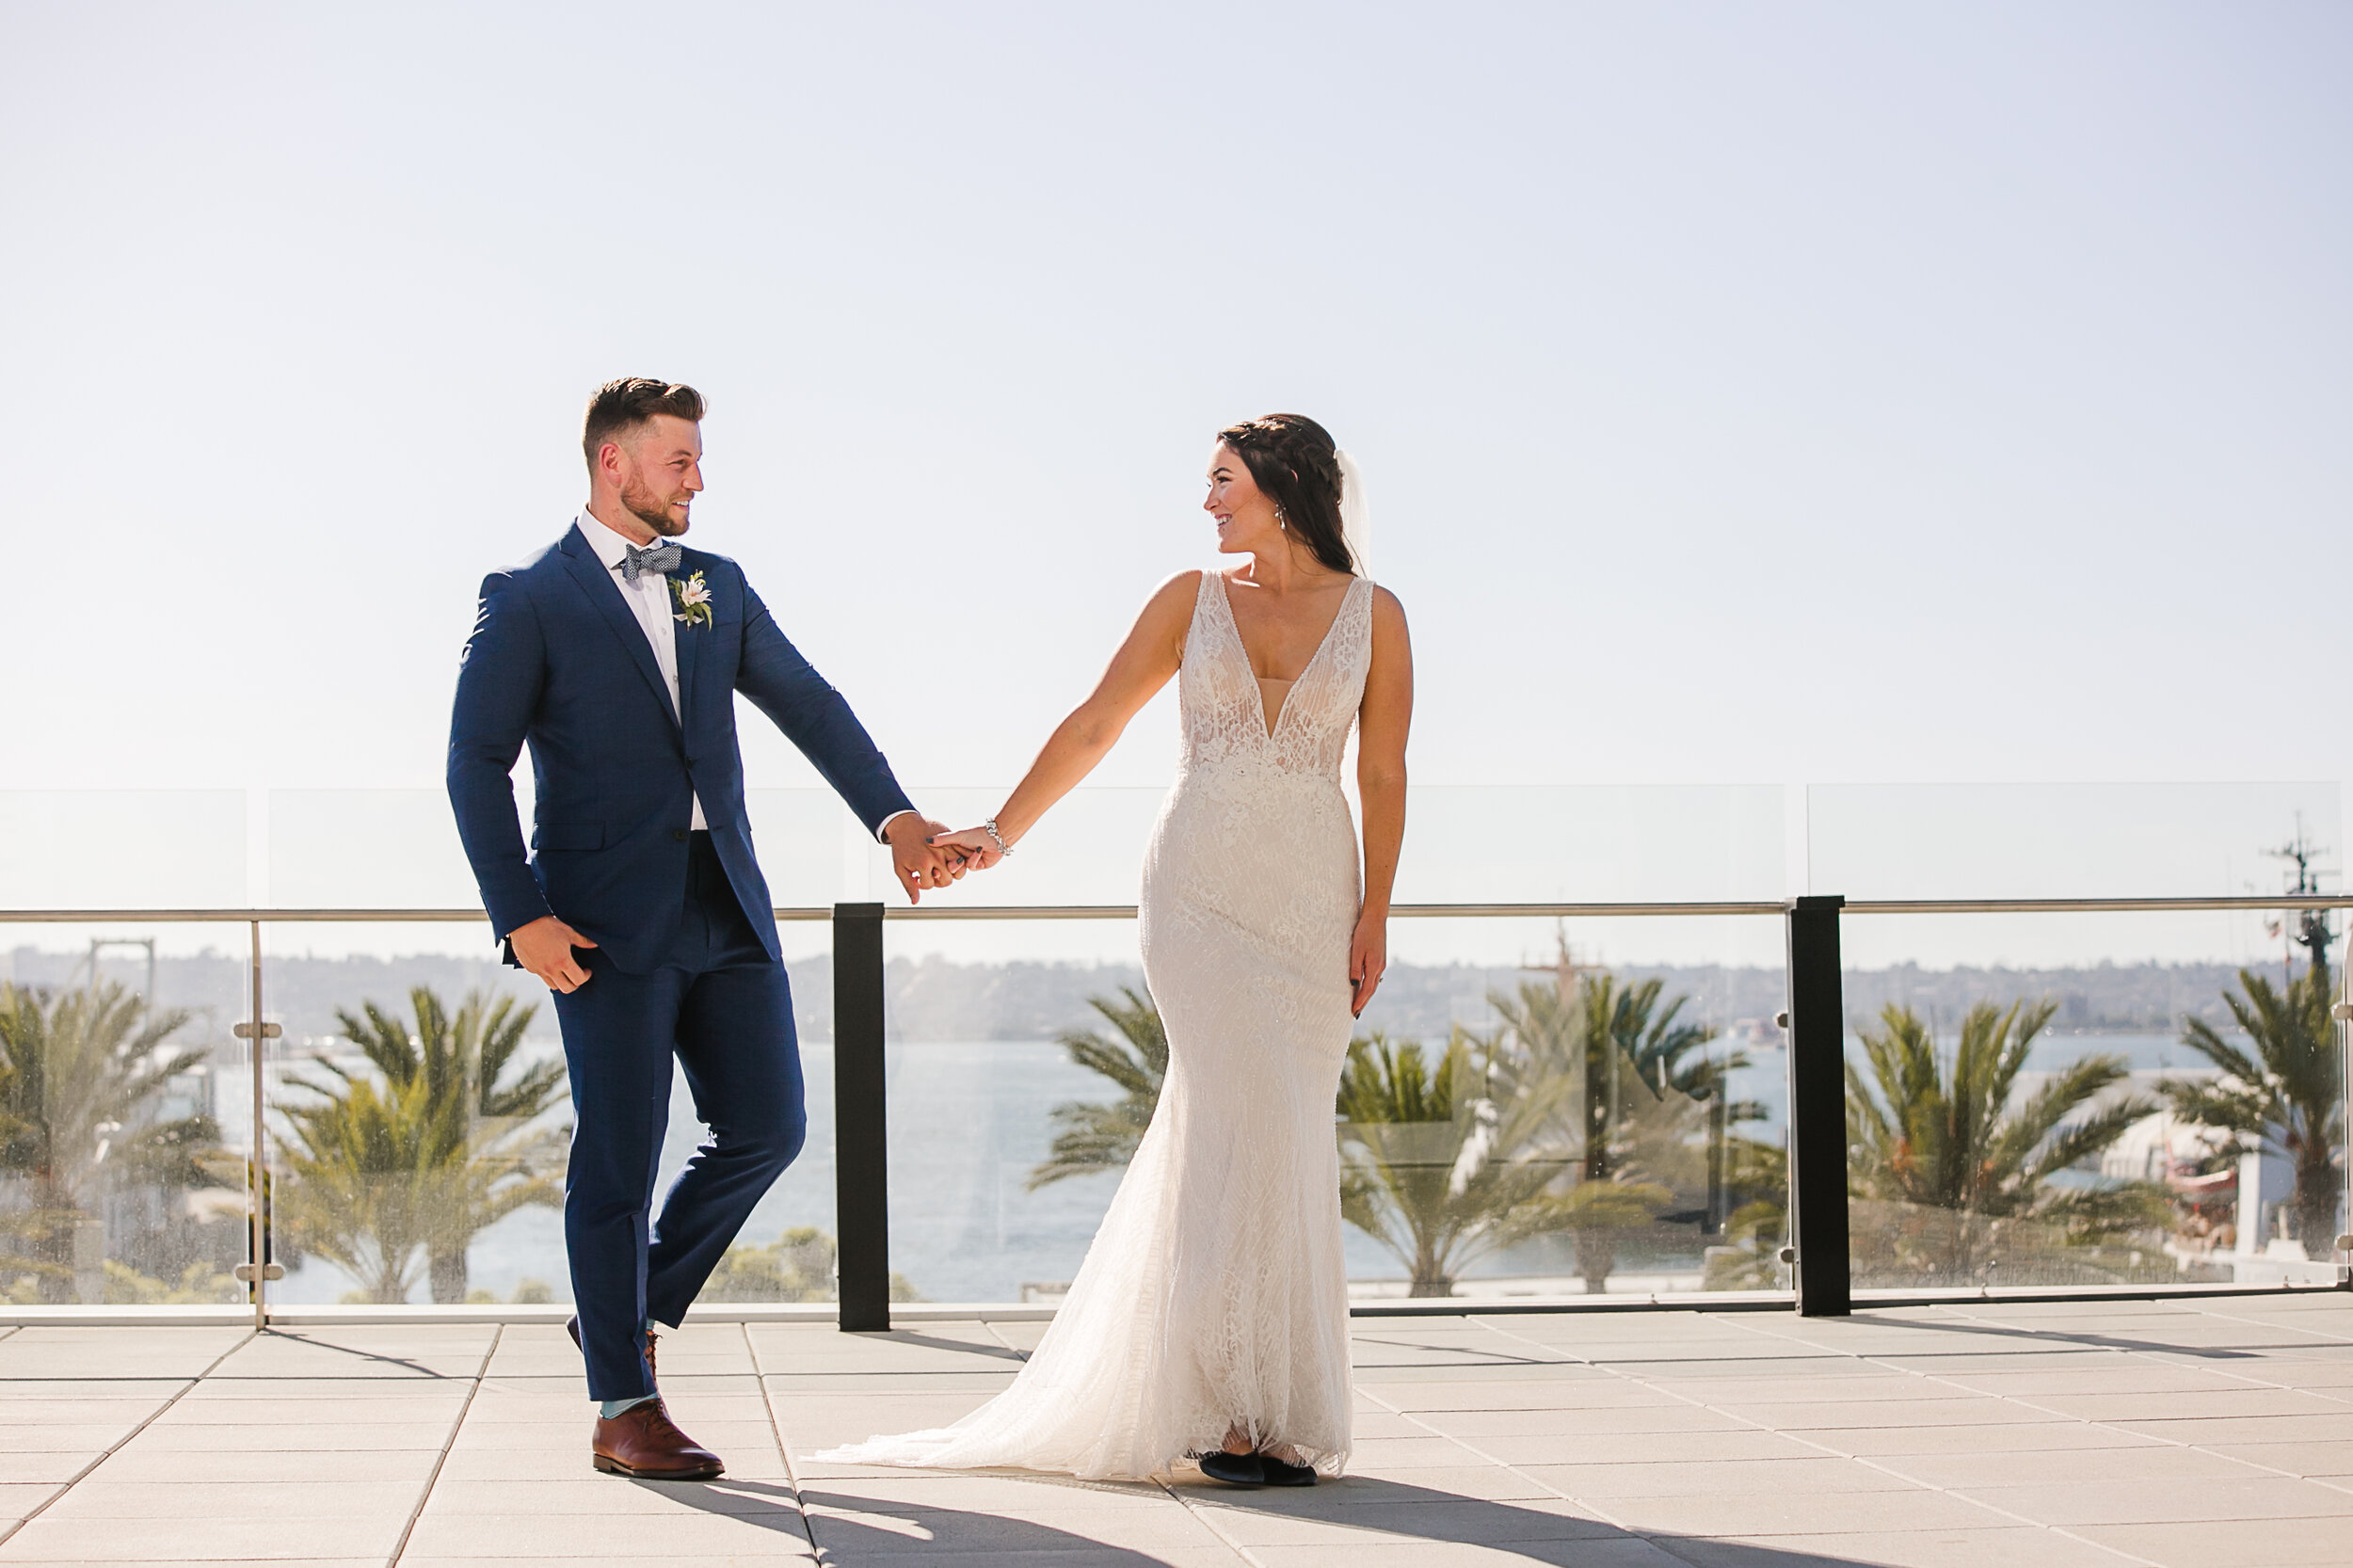 The Skyline meets the Sea at this rooftop modern wedding in San Diego, Ca